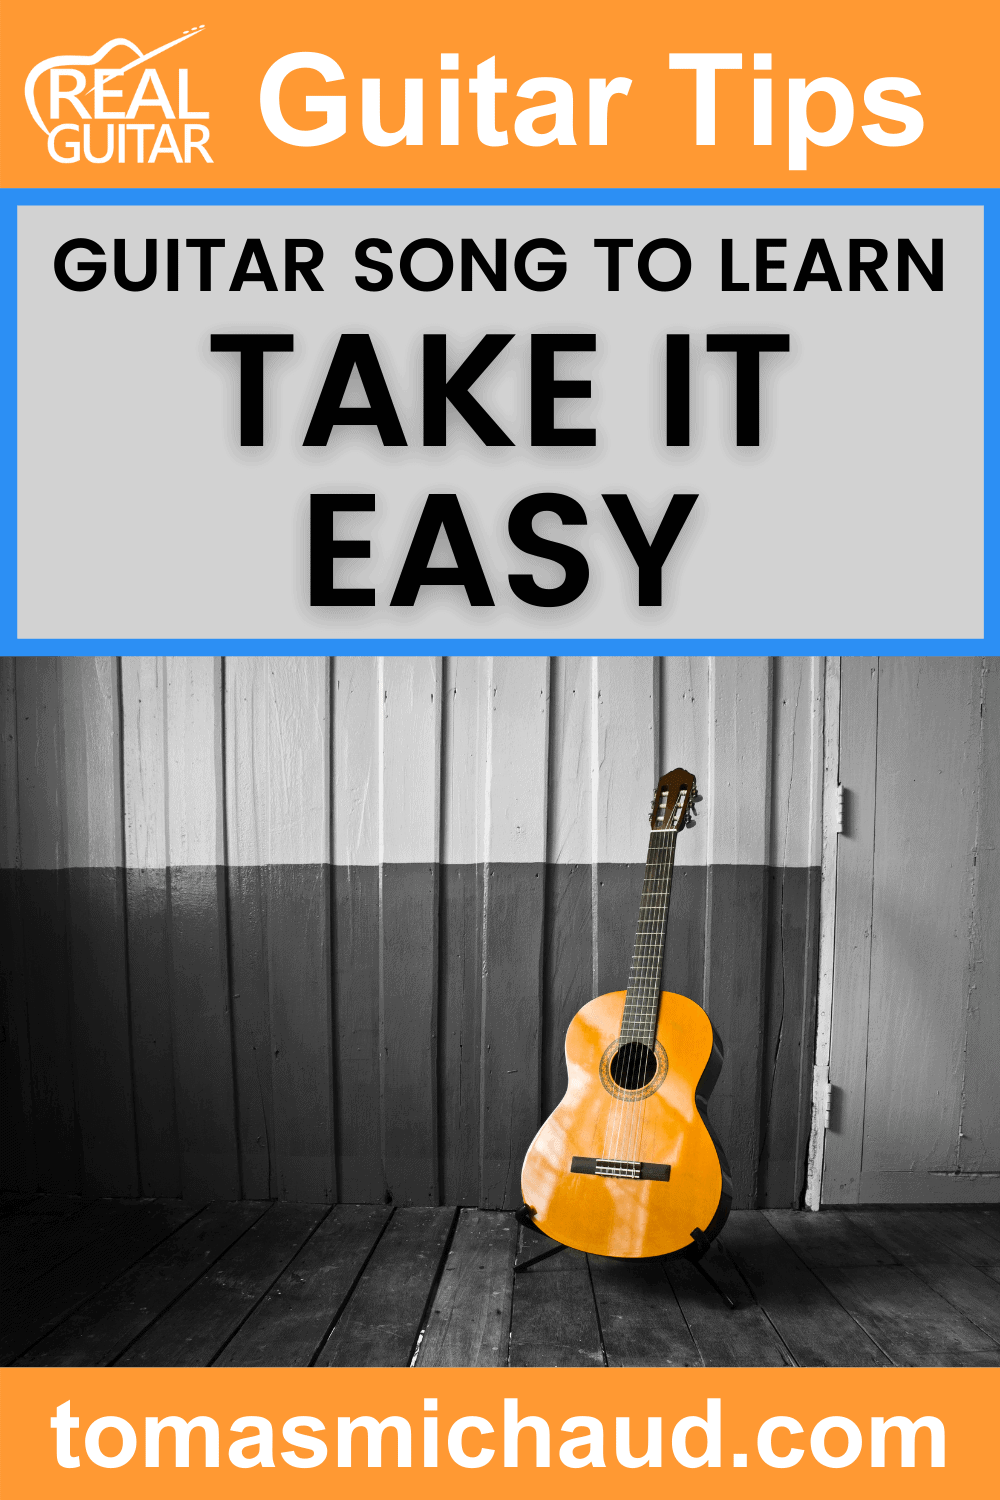 Guitar Songs to Learn: Take It Easy